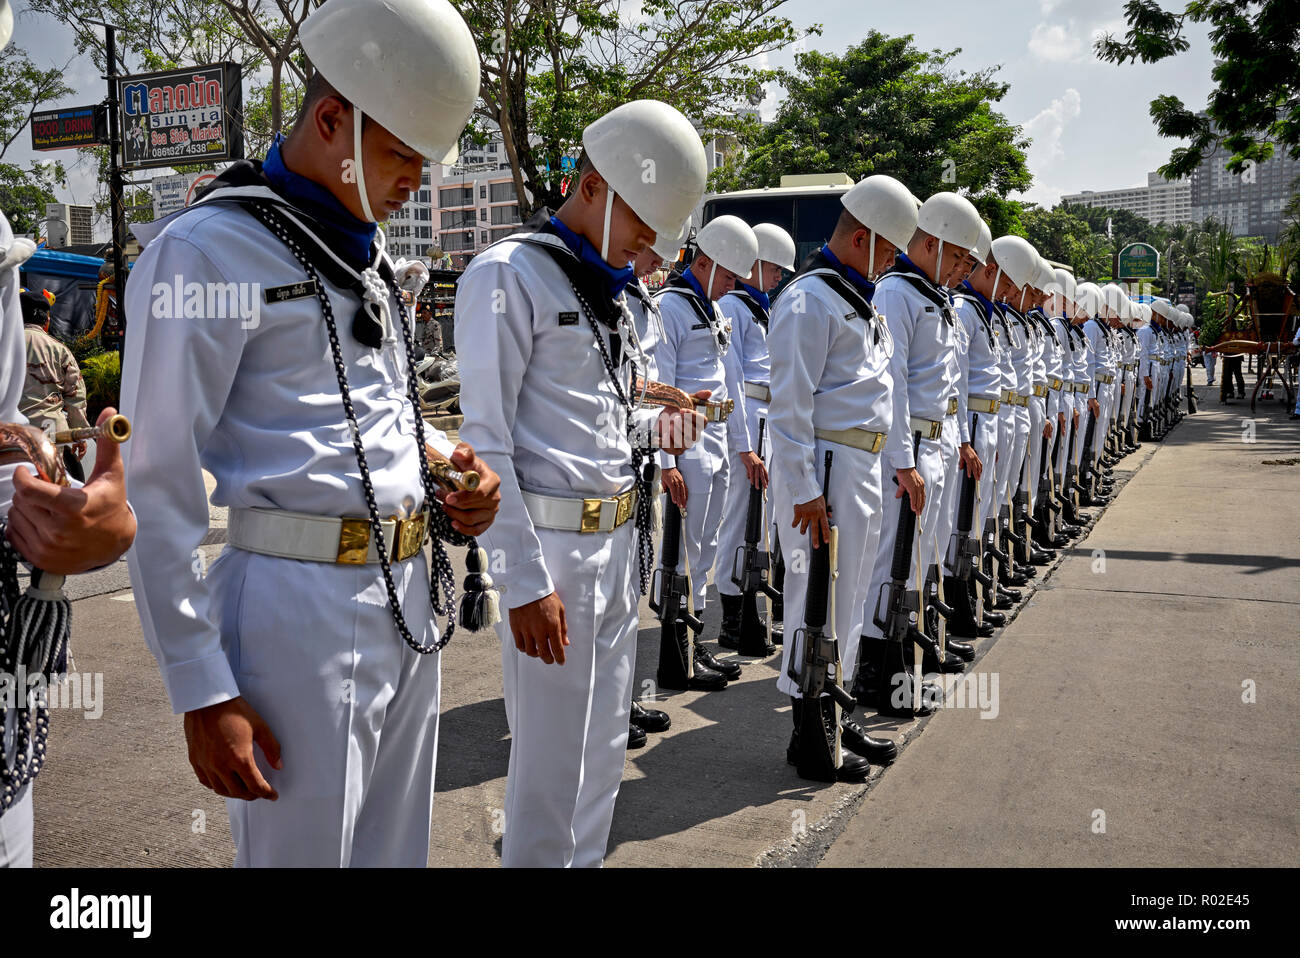 Thailand navy personnel on parade in full military whites and bowing in respect to the Thai King - Stock Image